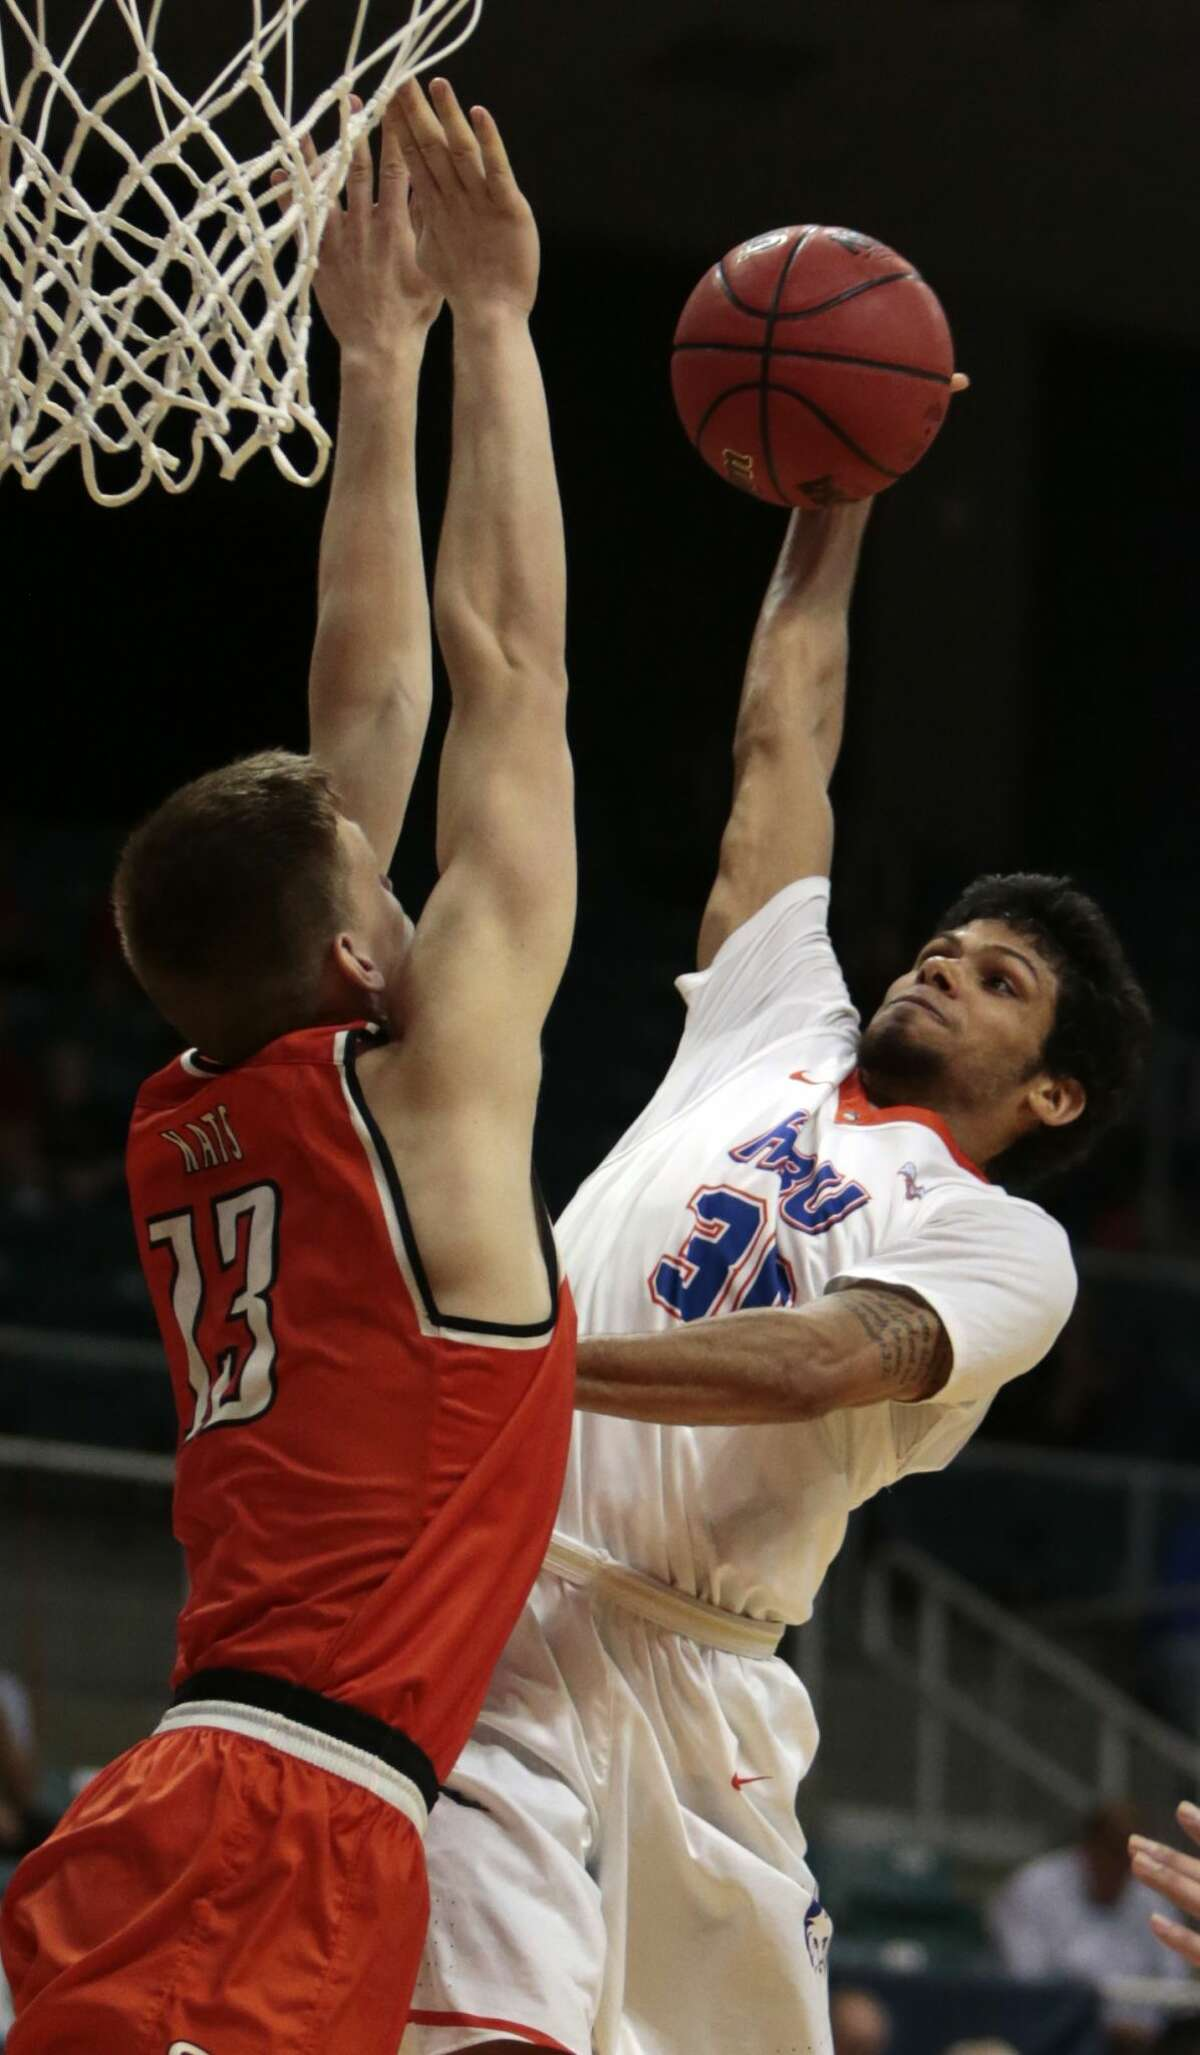 Houston Baptist guard Braxton Bonds (30) goes up for a shot against Sam Houston State forward Aurimas Majauskas (13) during the second half of a Southland Conference Tournament quarterfinal basketball game at the Merrell Center on Thursday, March 9, 2017, in Katy. ( Brett Coomer / Houston Chronicle )